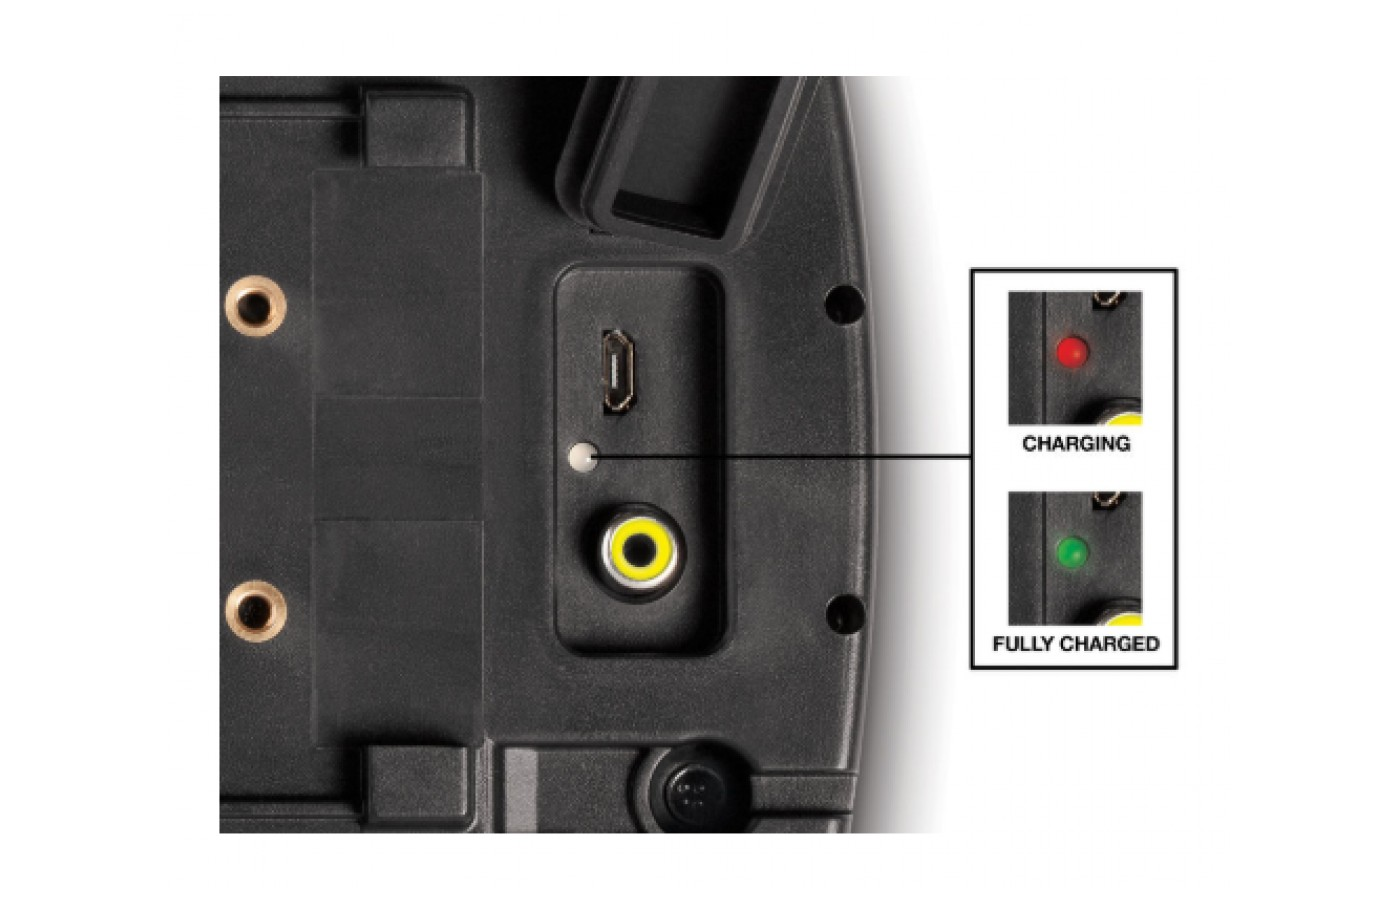 The MarCum Recon 5 has an on-screen indicator to tell you when it needs recharged again.